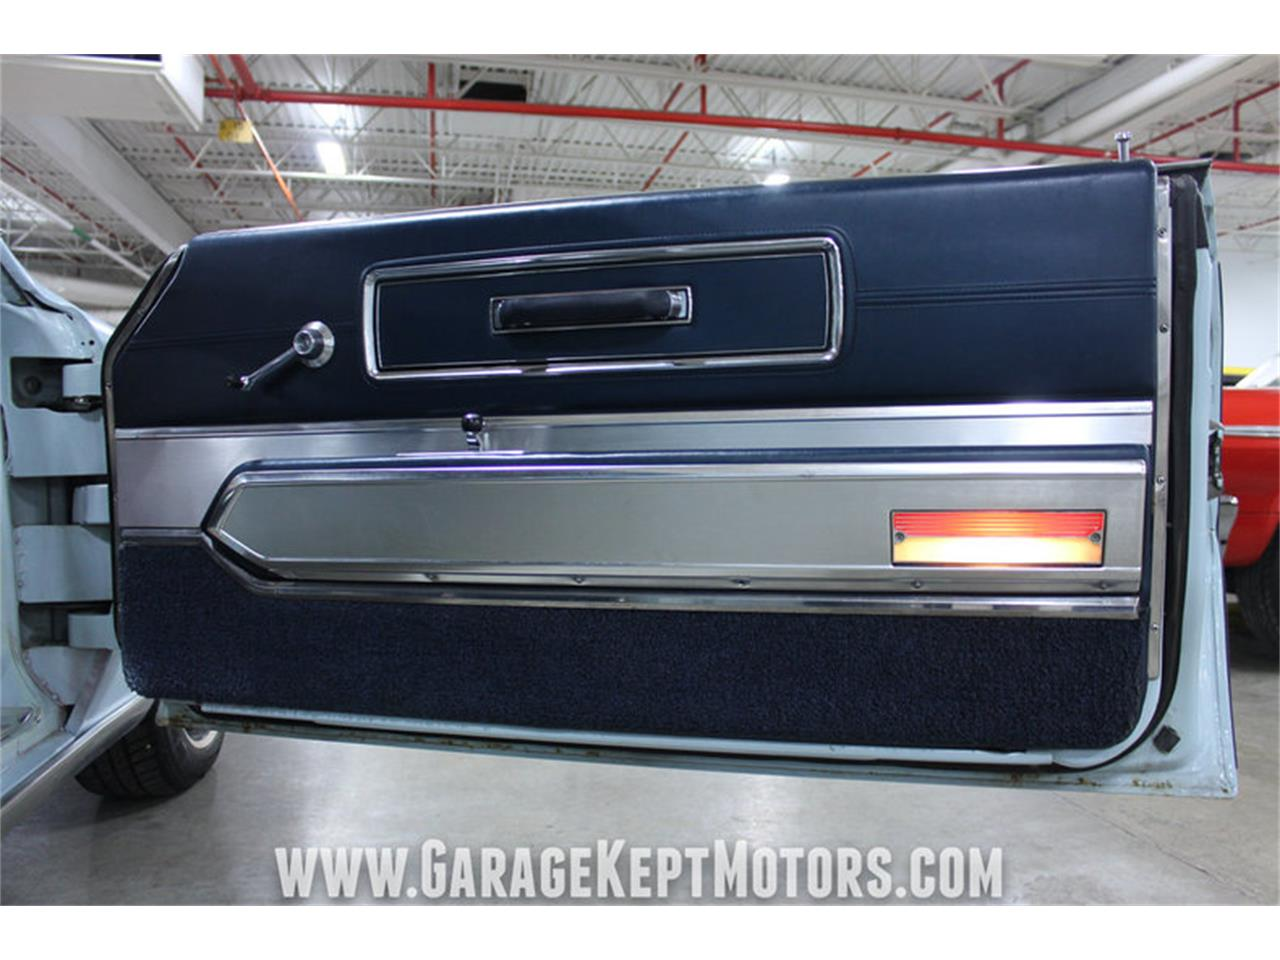 Large Picture of 1967 Ford Thunderbird 2-Door Landau located in Michigan - $11,900.00 Offered by Garage Kept Motors - LU7P